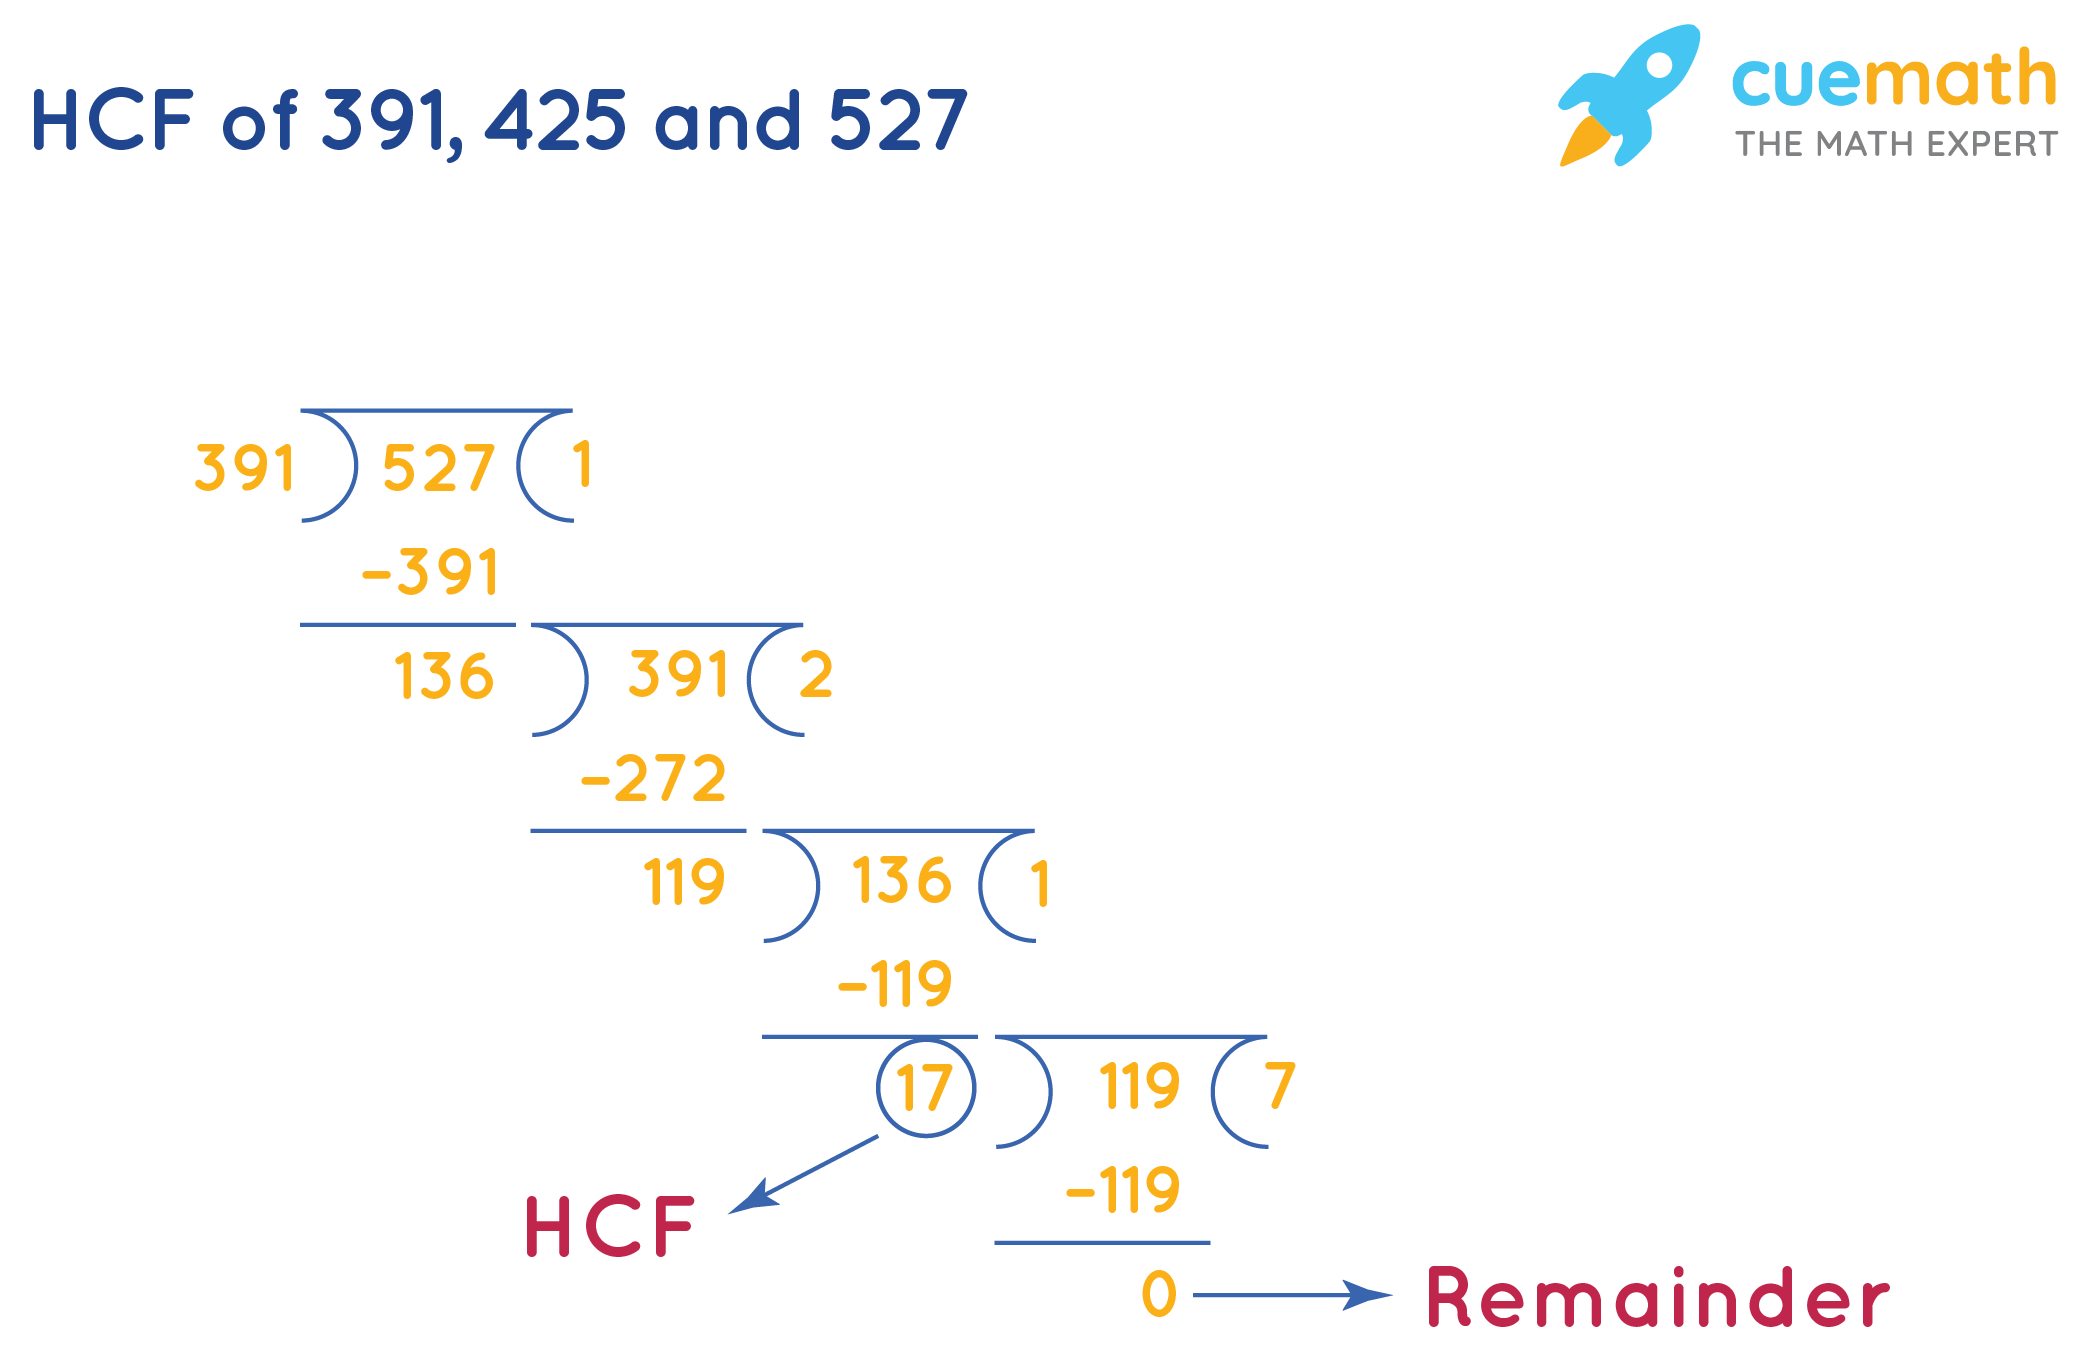 Calculate HCF(391, 425, 527) by Long Division-1